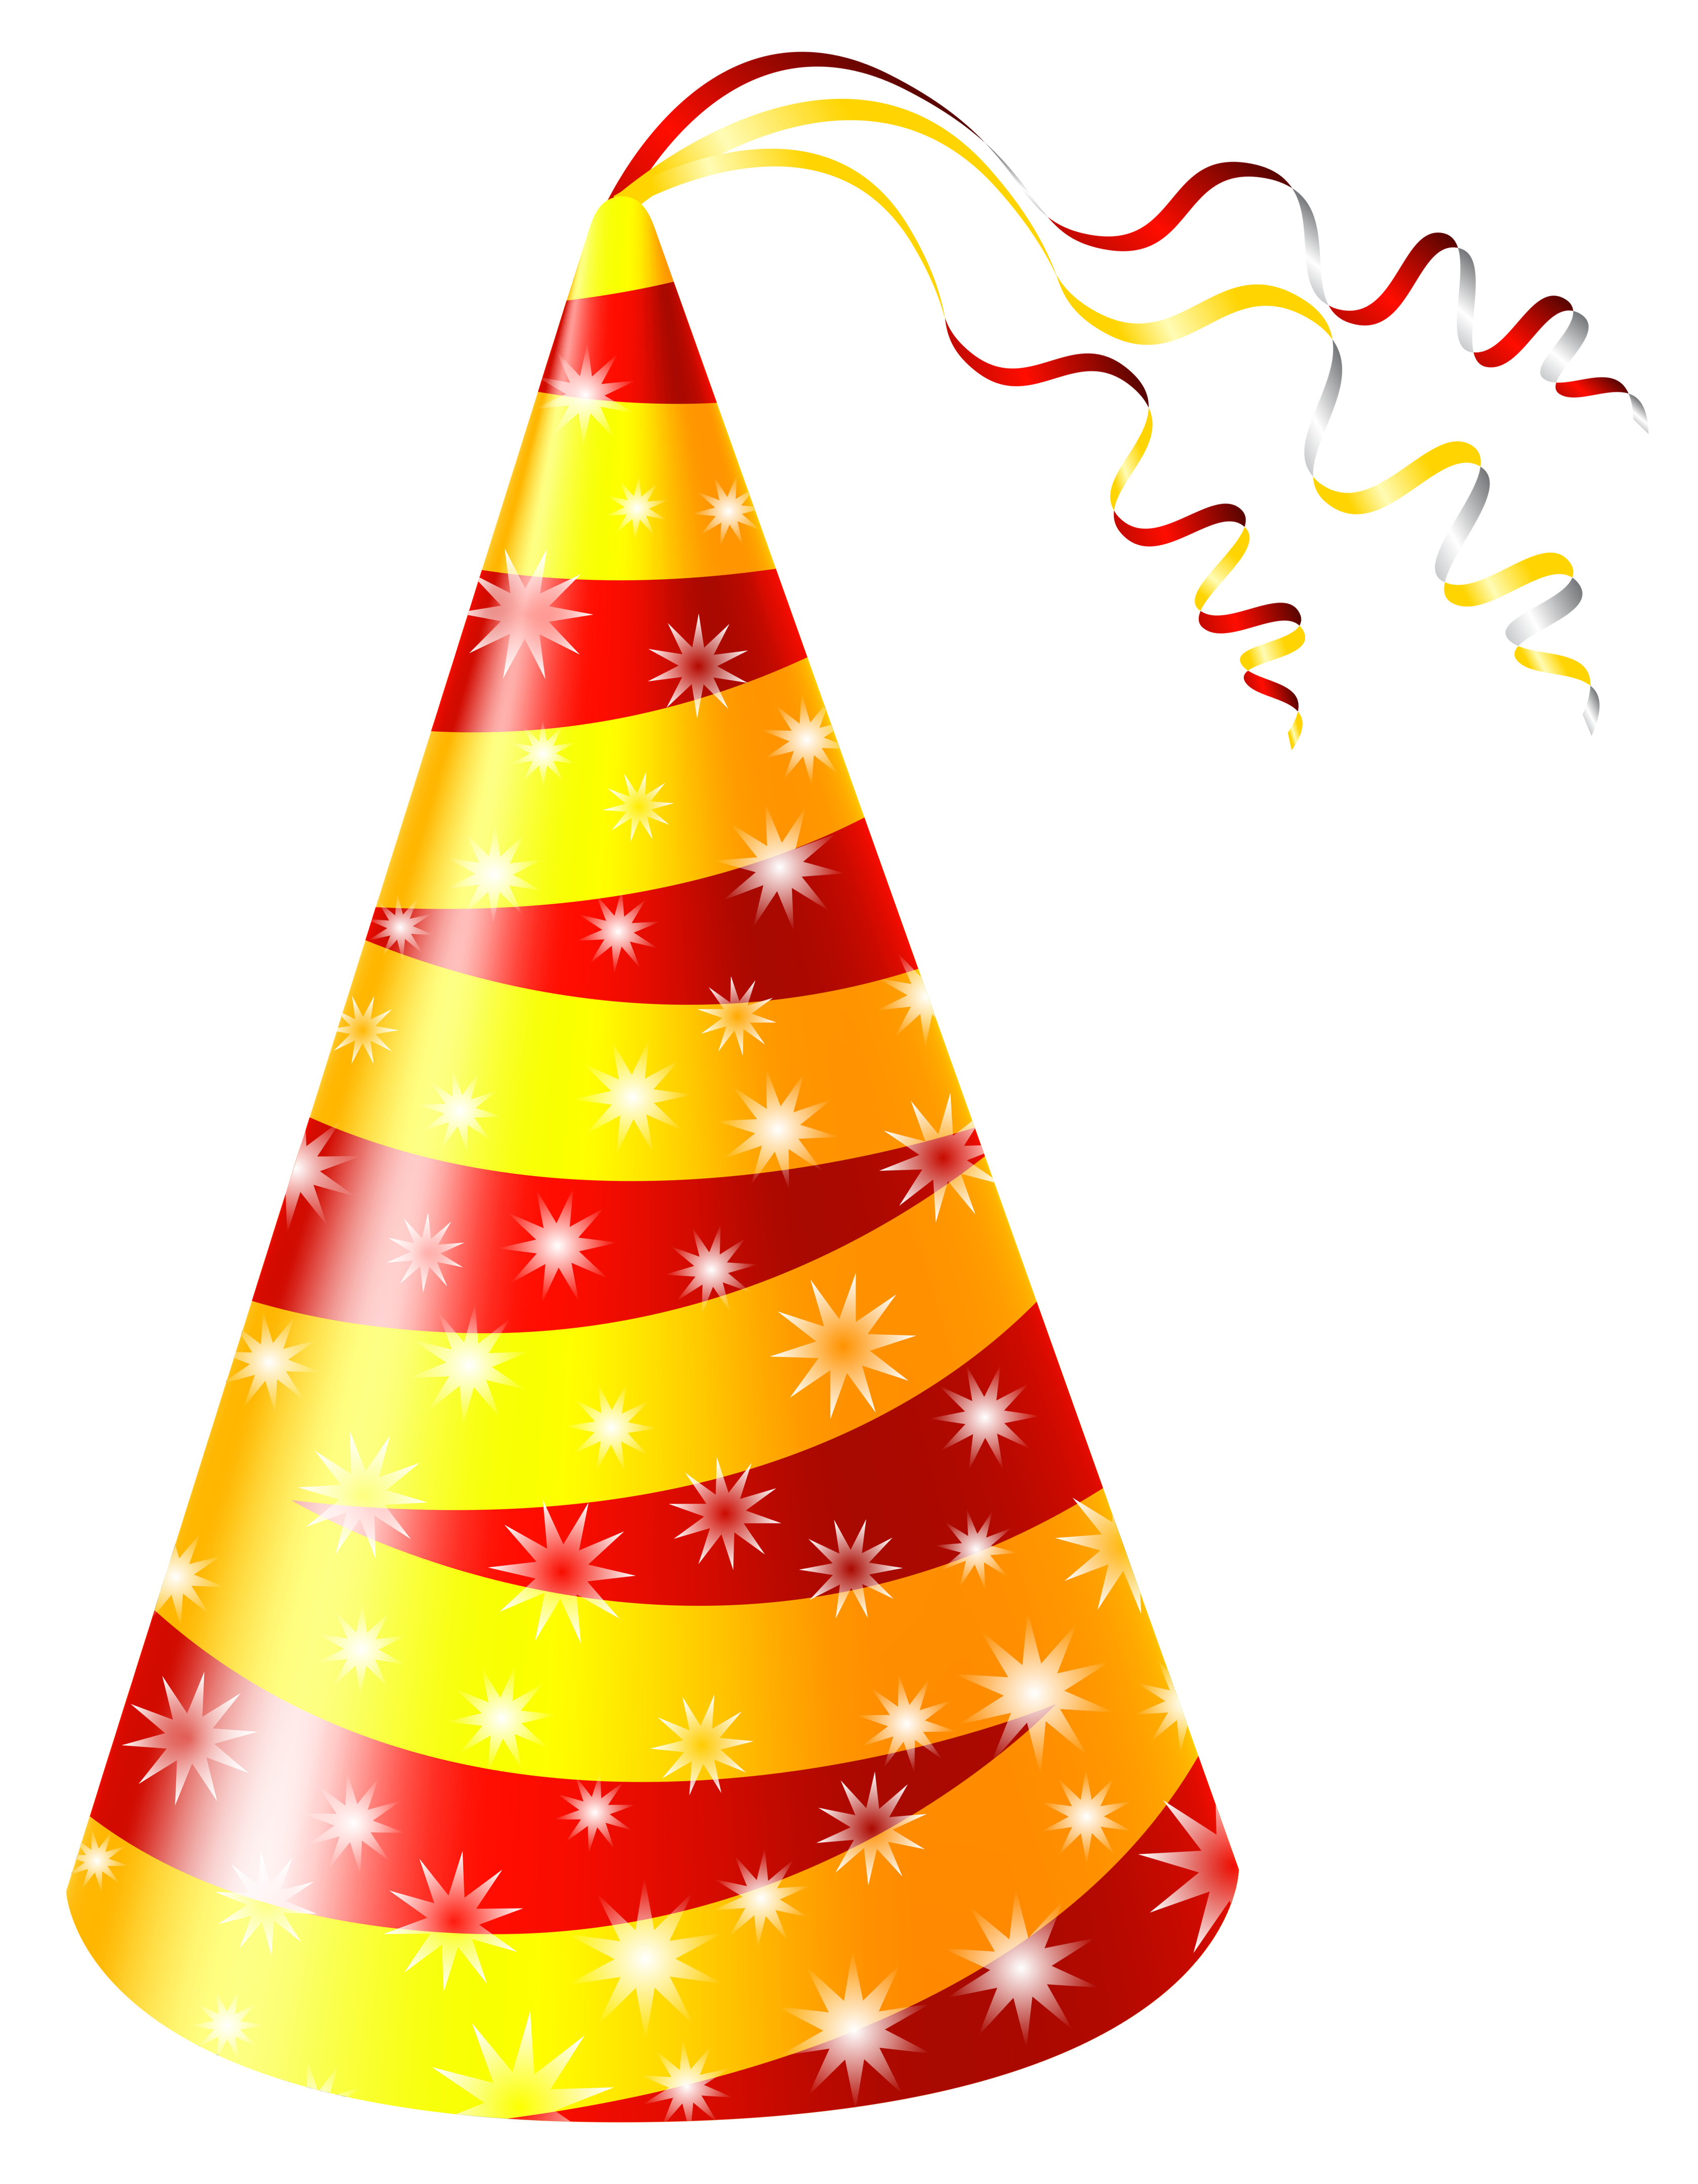 Hat clipart happy birthday And Yellow Yopriceville full Party